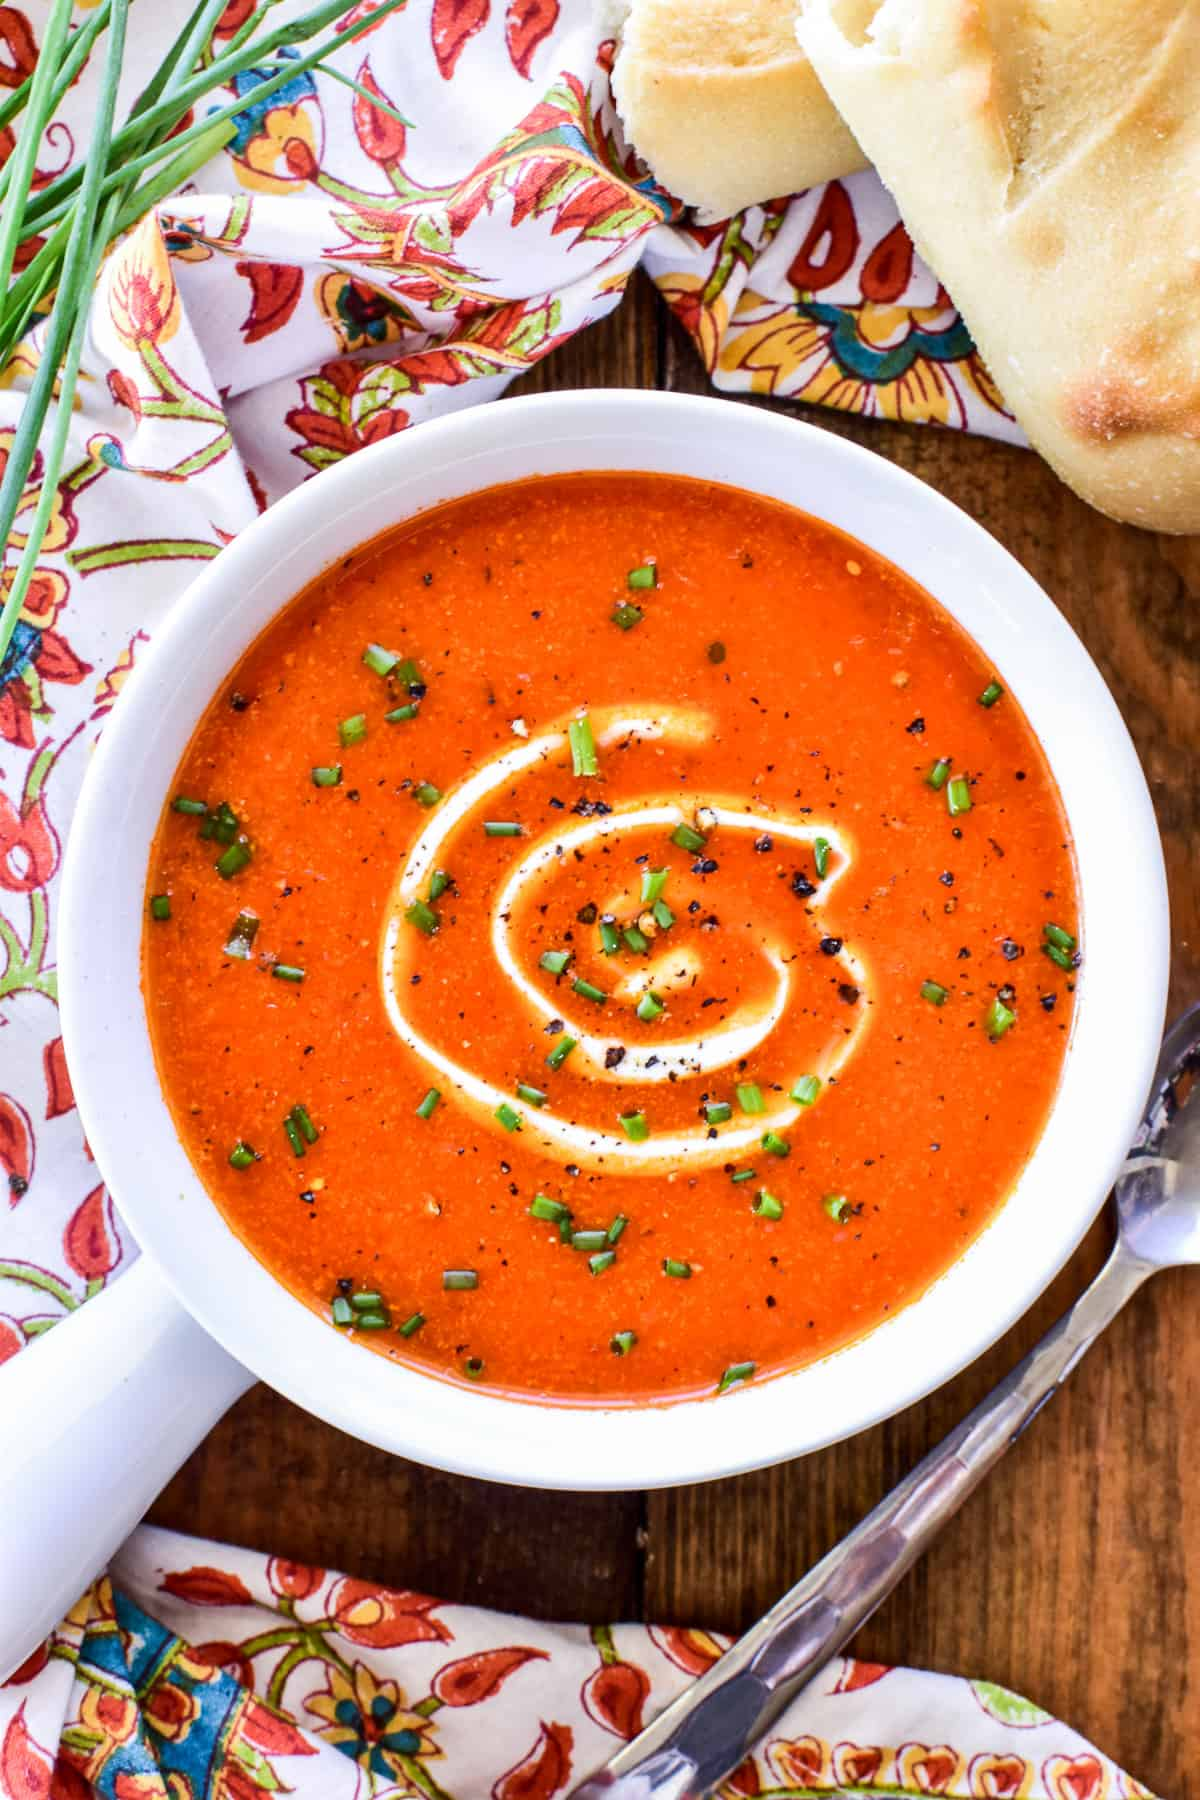 Overhead image of Roasted Red Pepper Soup with sour cream & chives